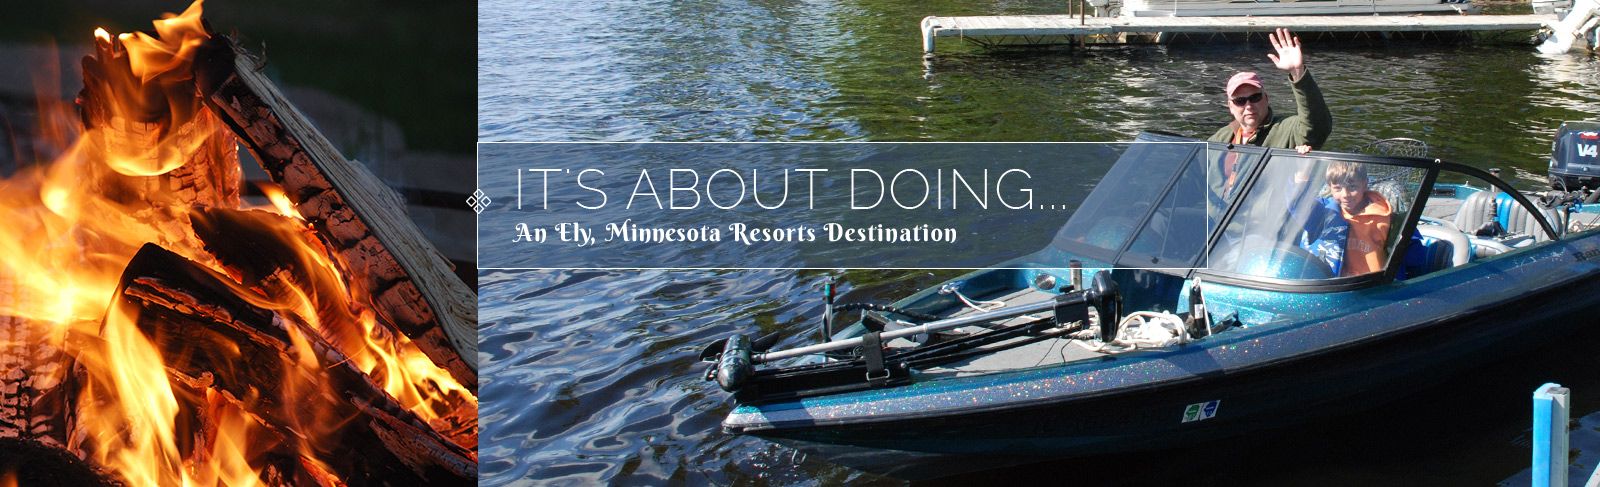 Minnesota Resorts-Ely Minnesota Resorts-River Point Resort-Things To Do On Land, On Water